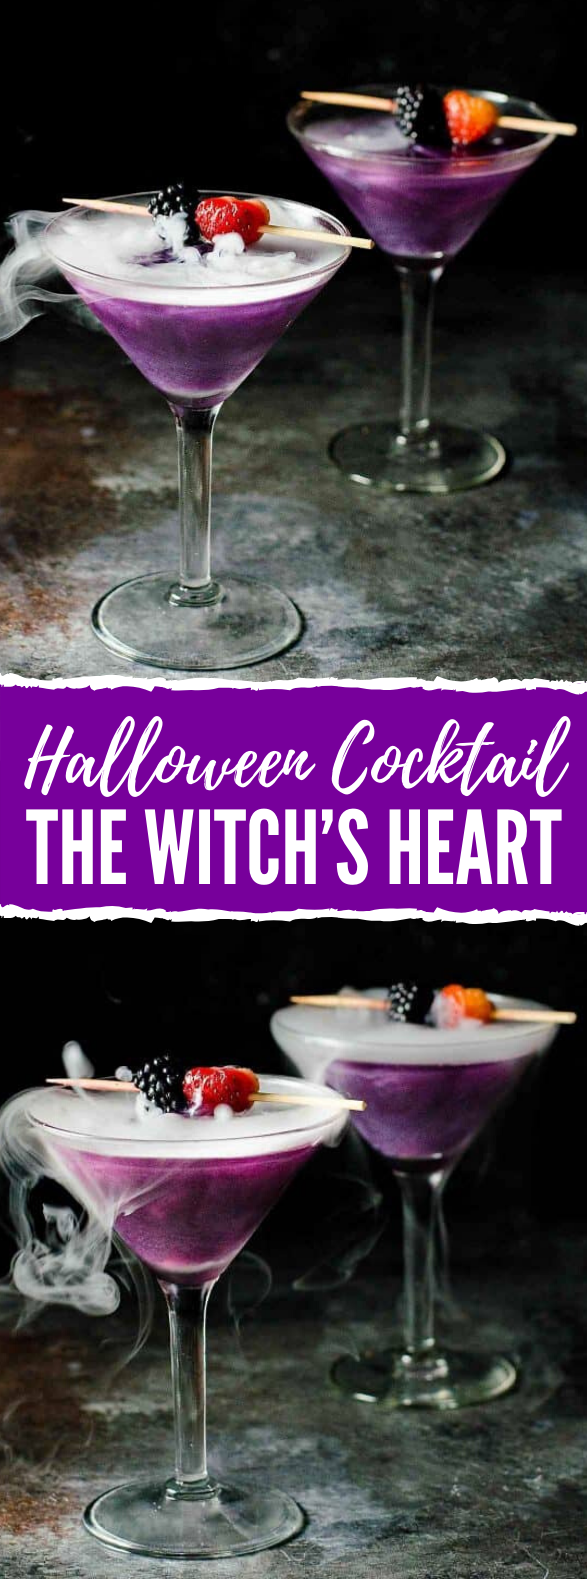 The Witch's Heart – Halloween Cocktail #drinks #easytomake